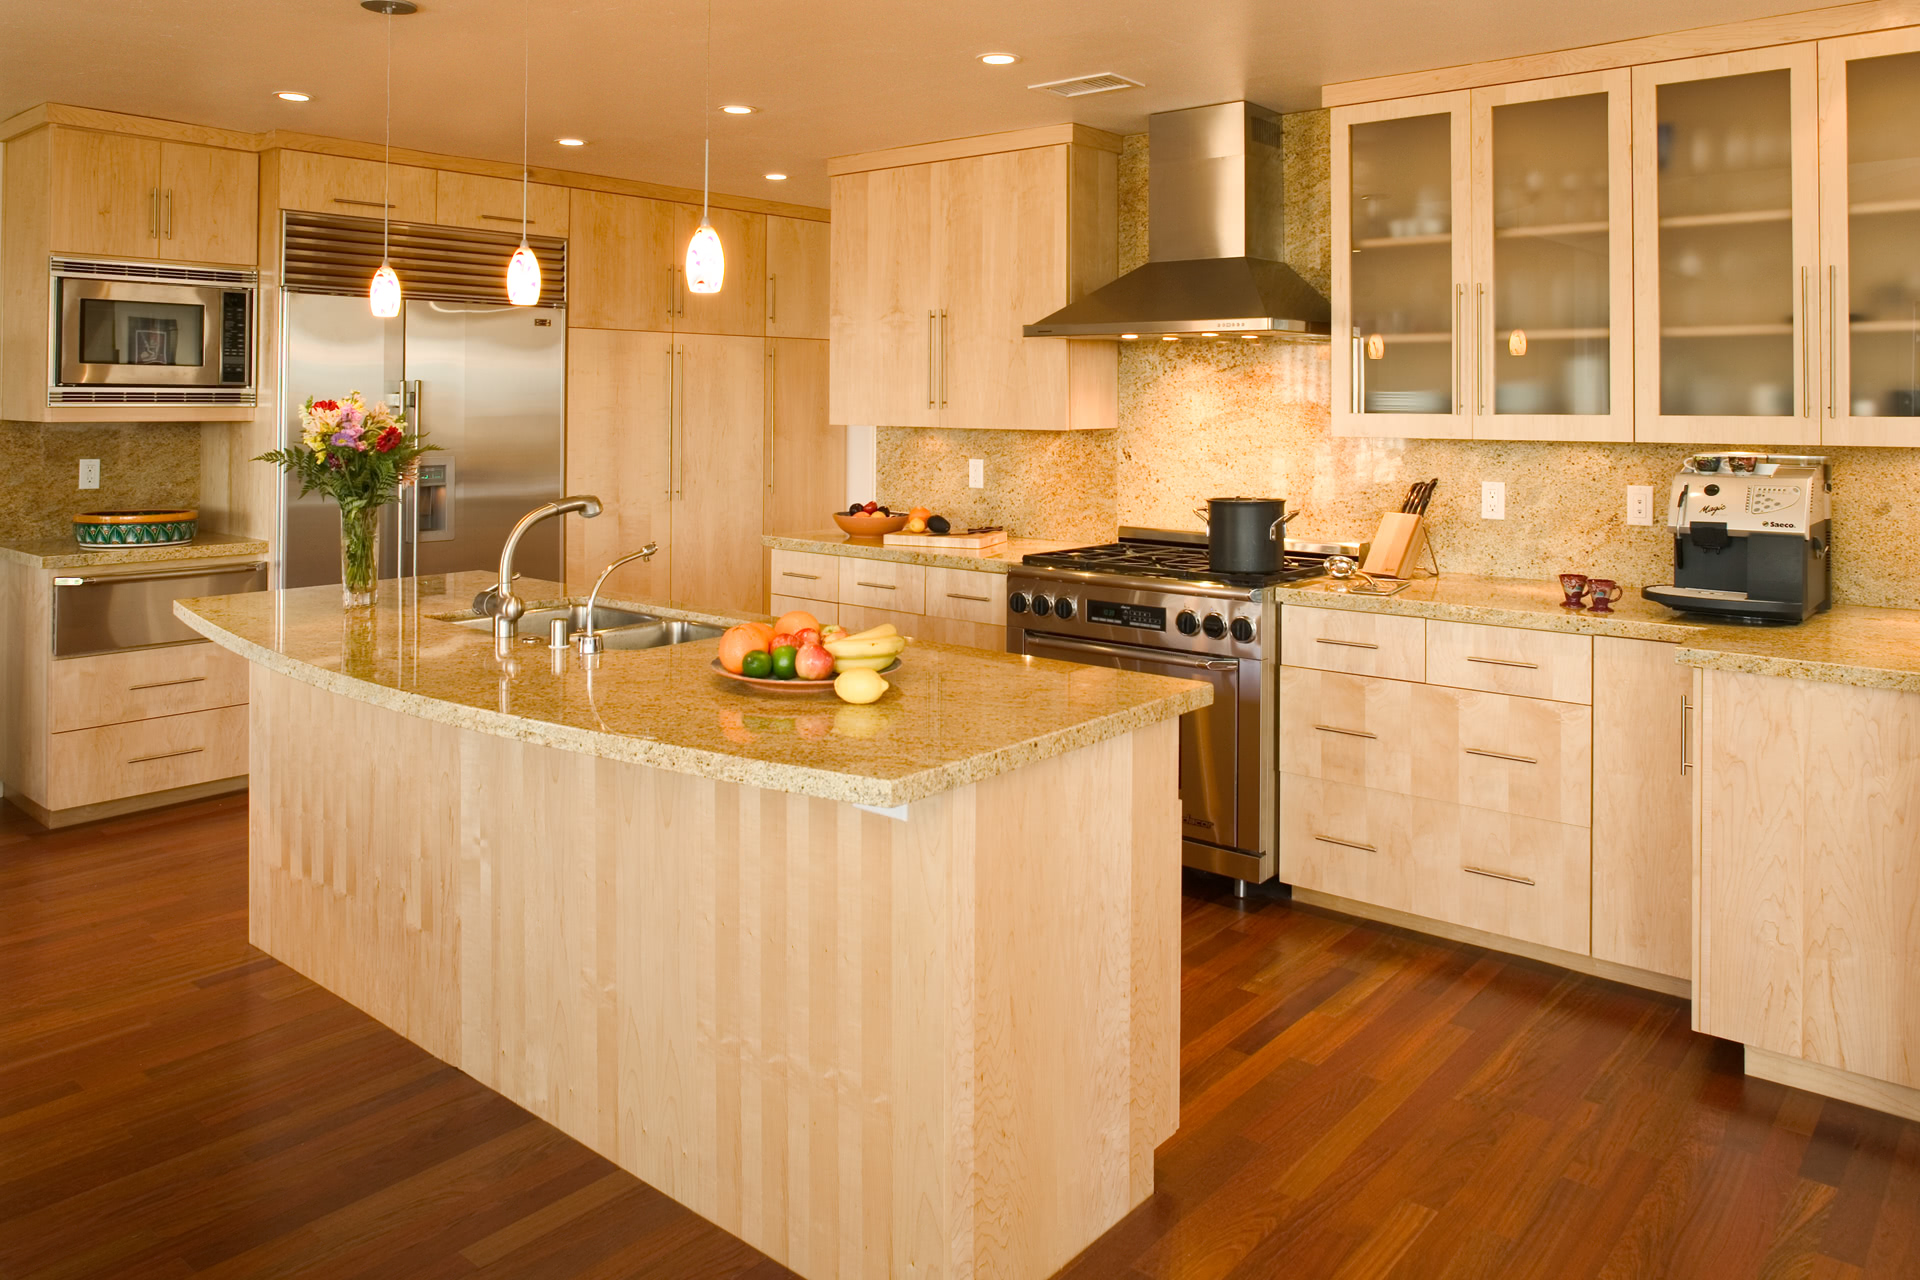 How to finish wood kitchen cabinets for Finished kitchen cabinets